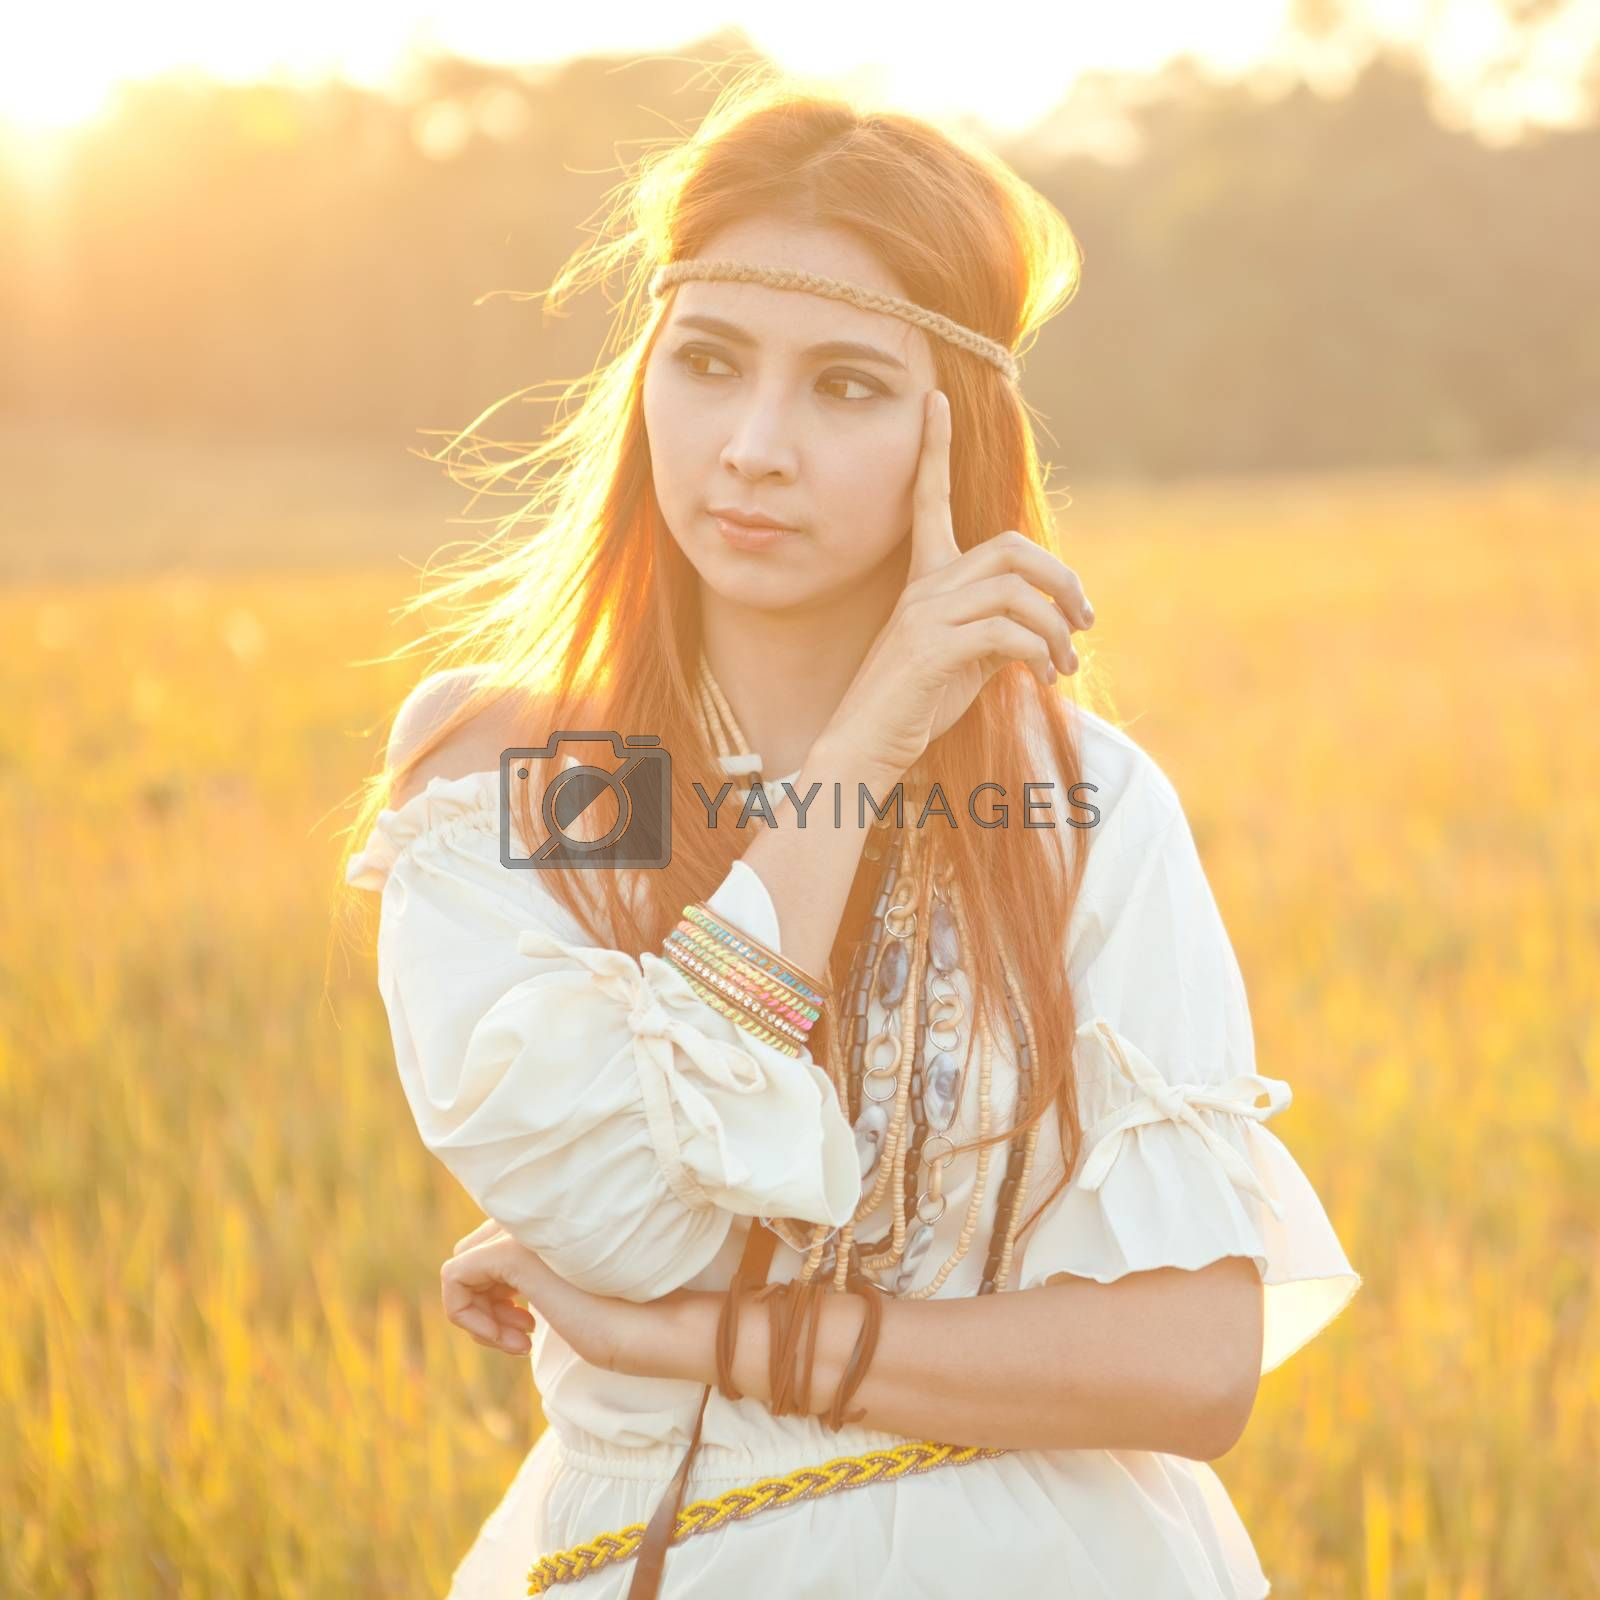 Hippie woman posing in golden field on sunset